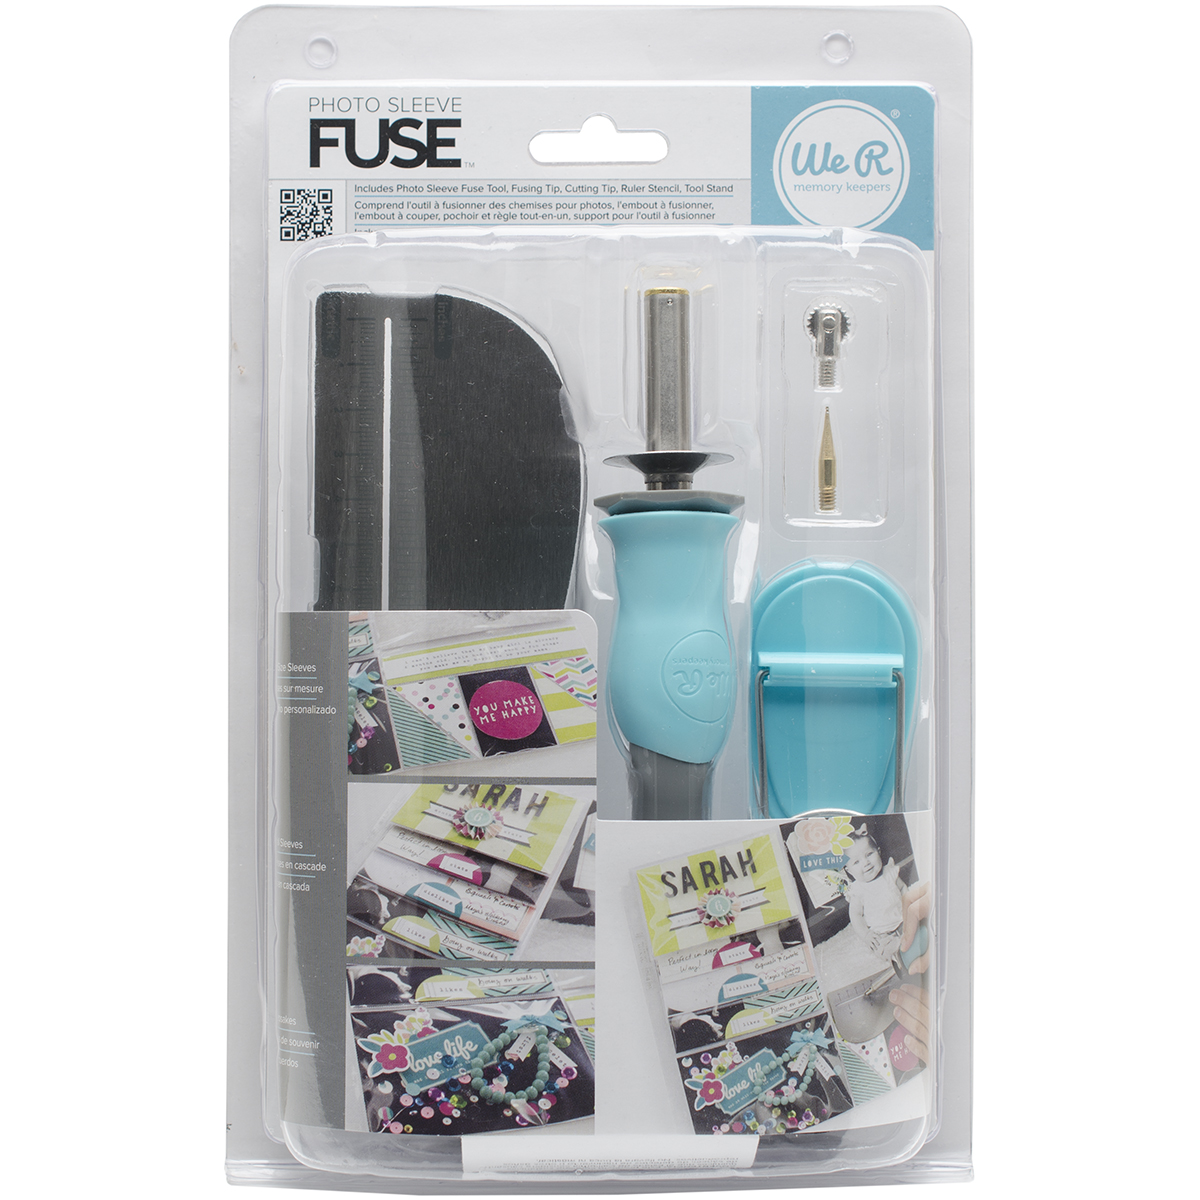 We R Memory Keepers - Fuse Photo Sleeve Tool